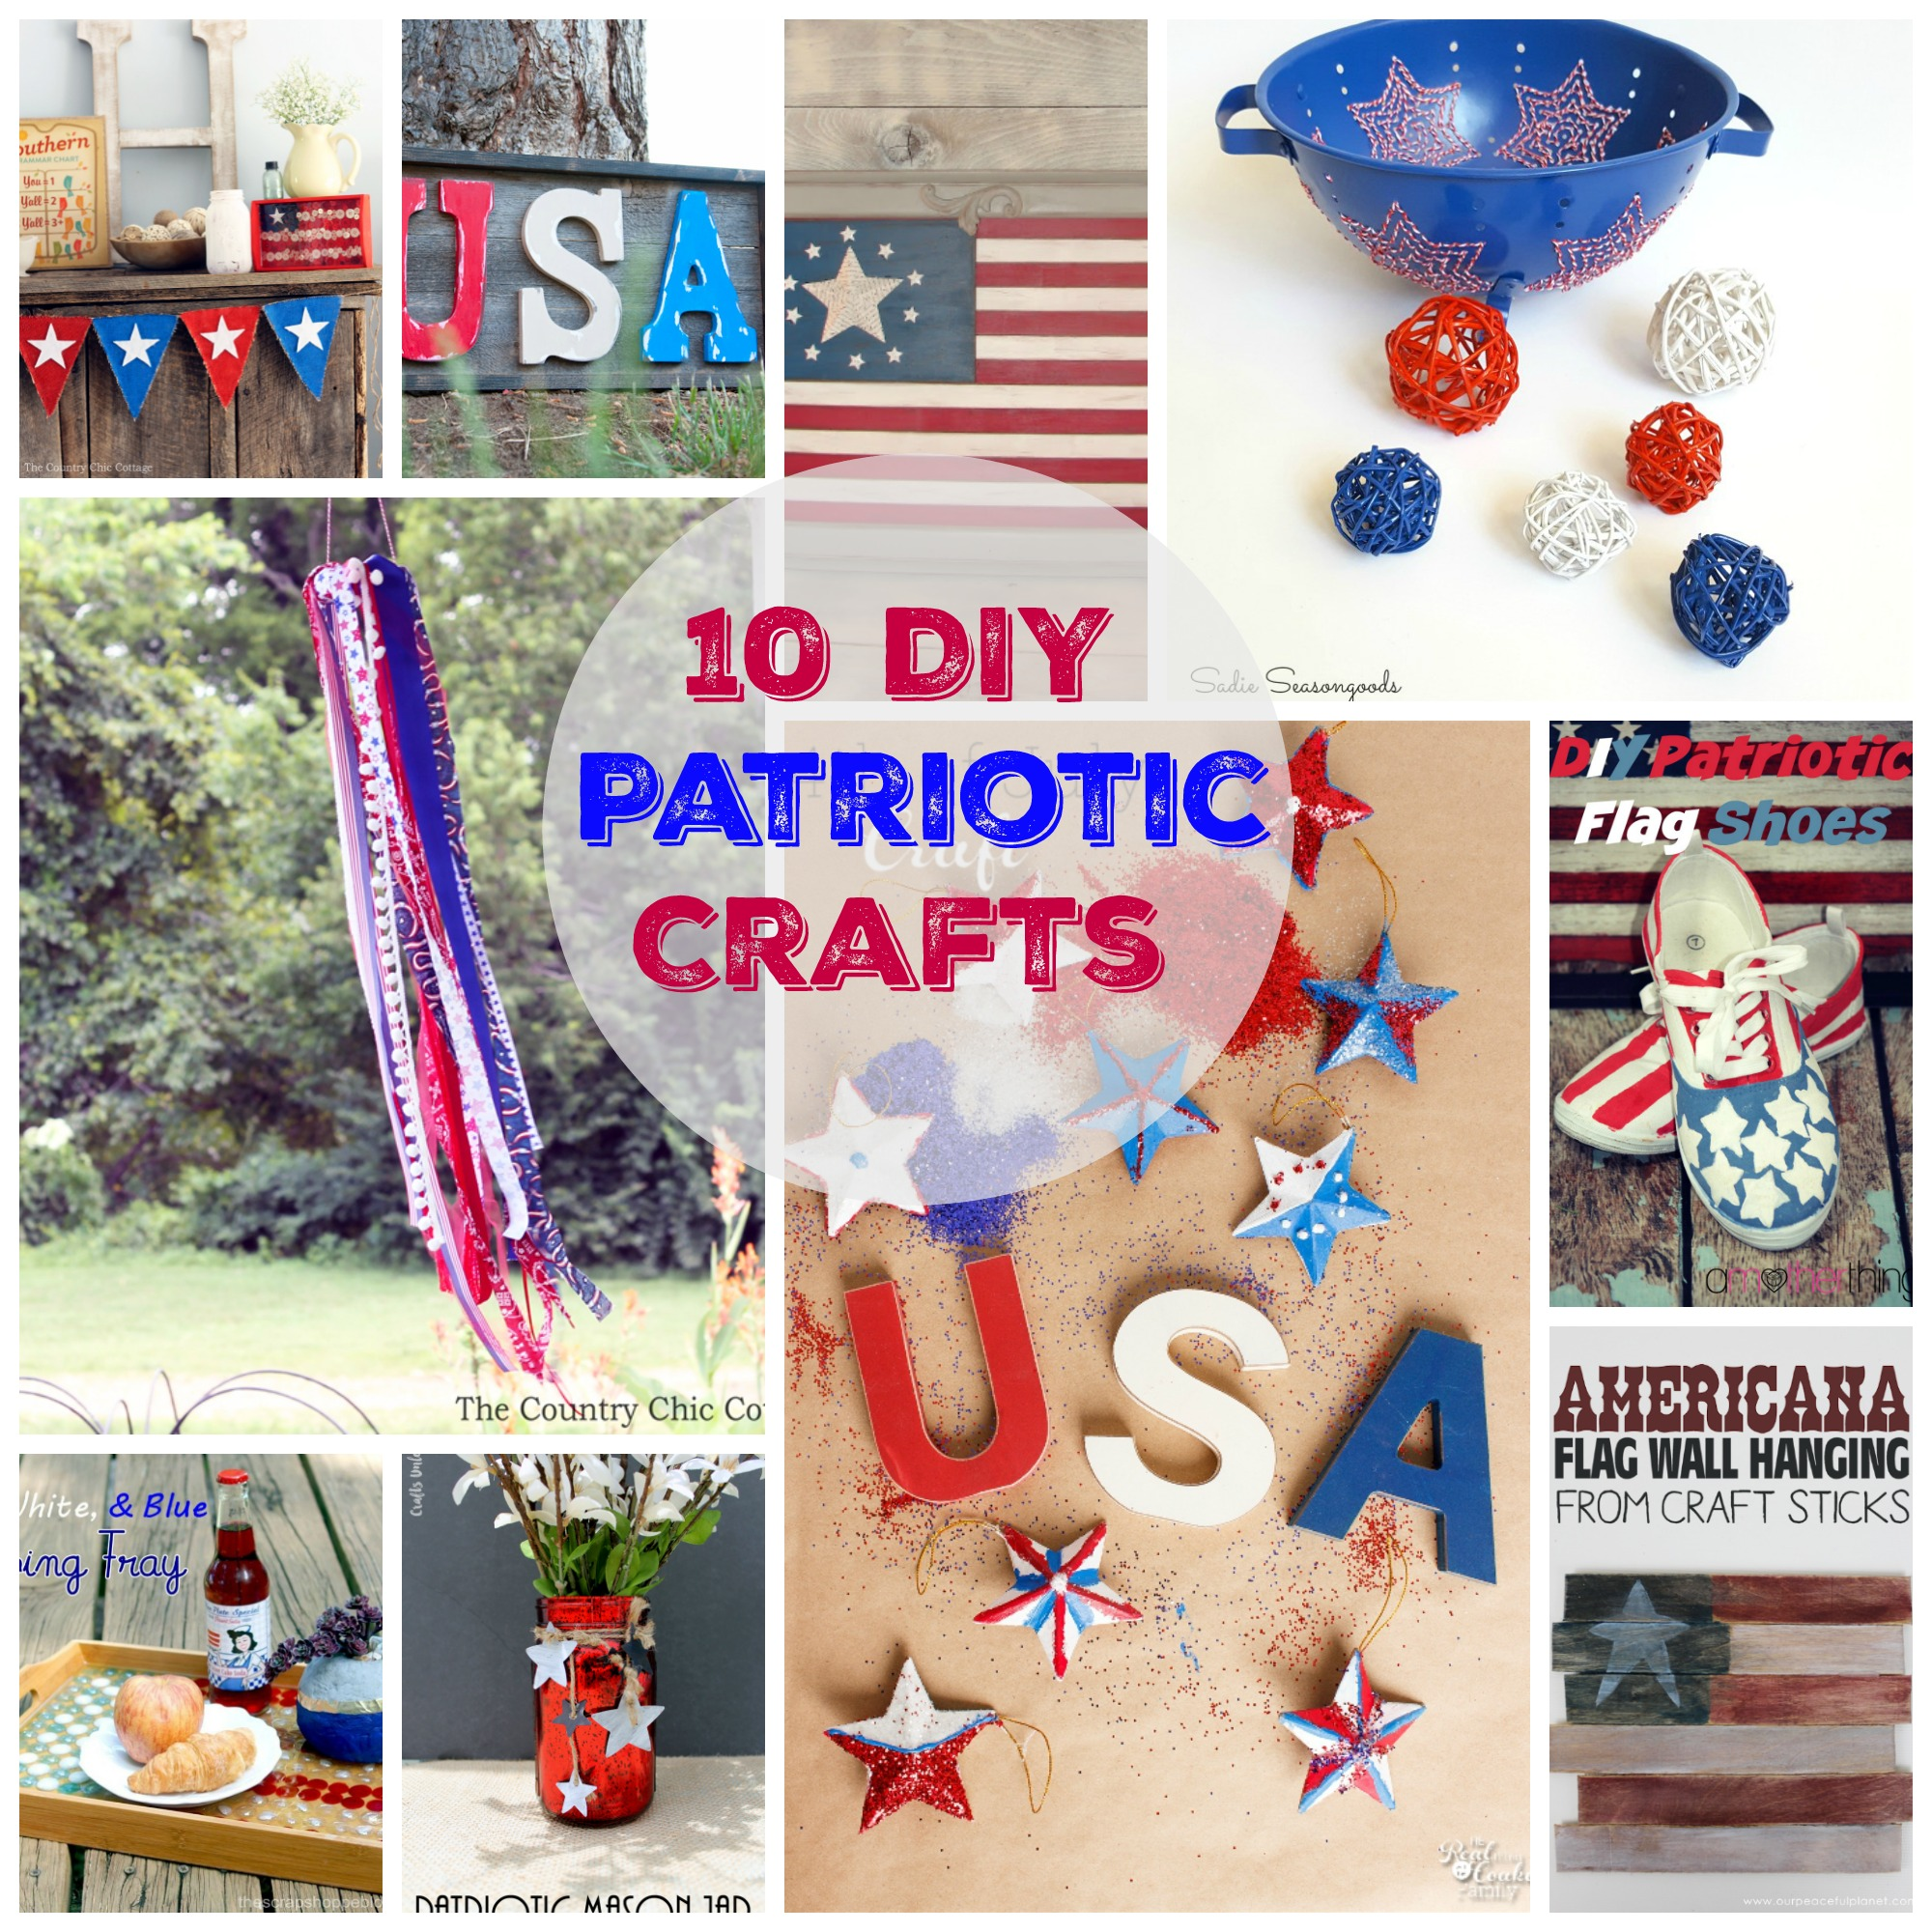 10 DIY Patriotic Crafts you can make at home